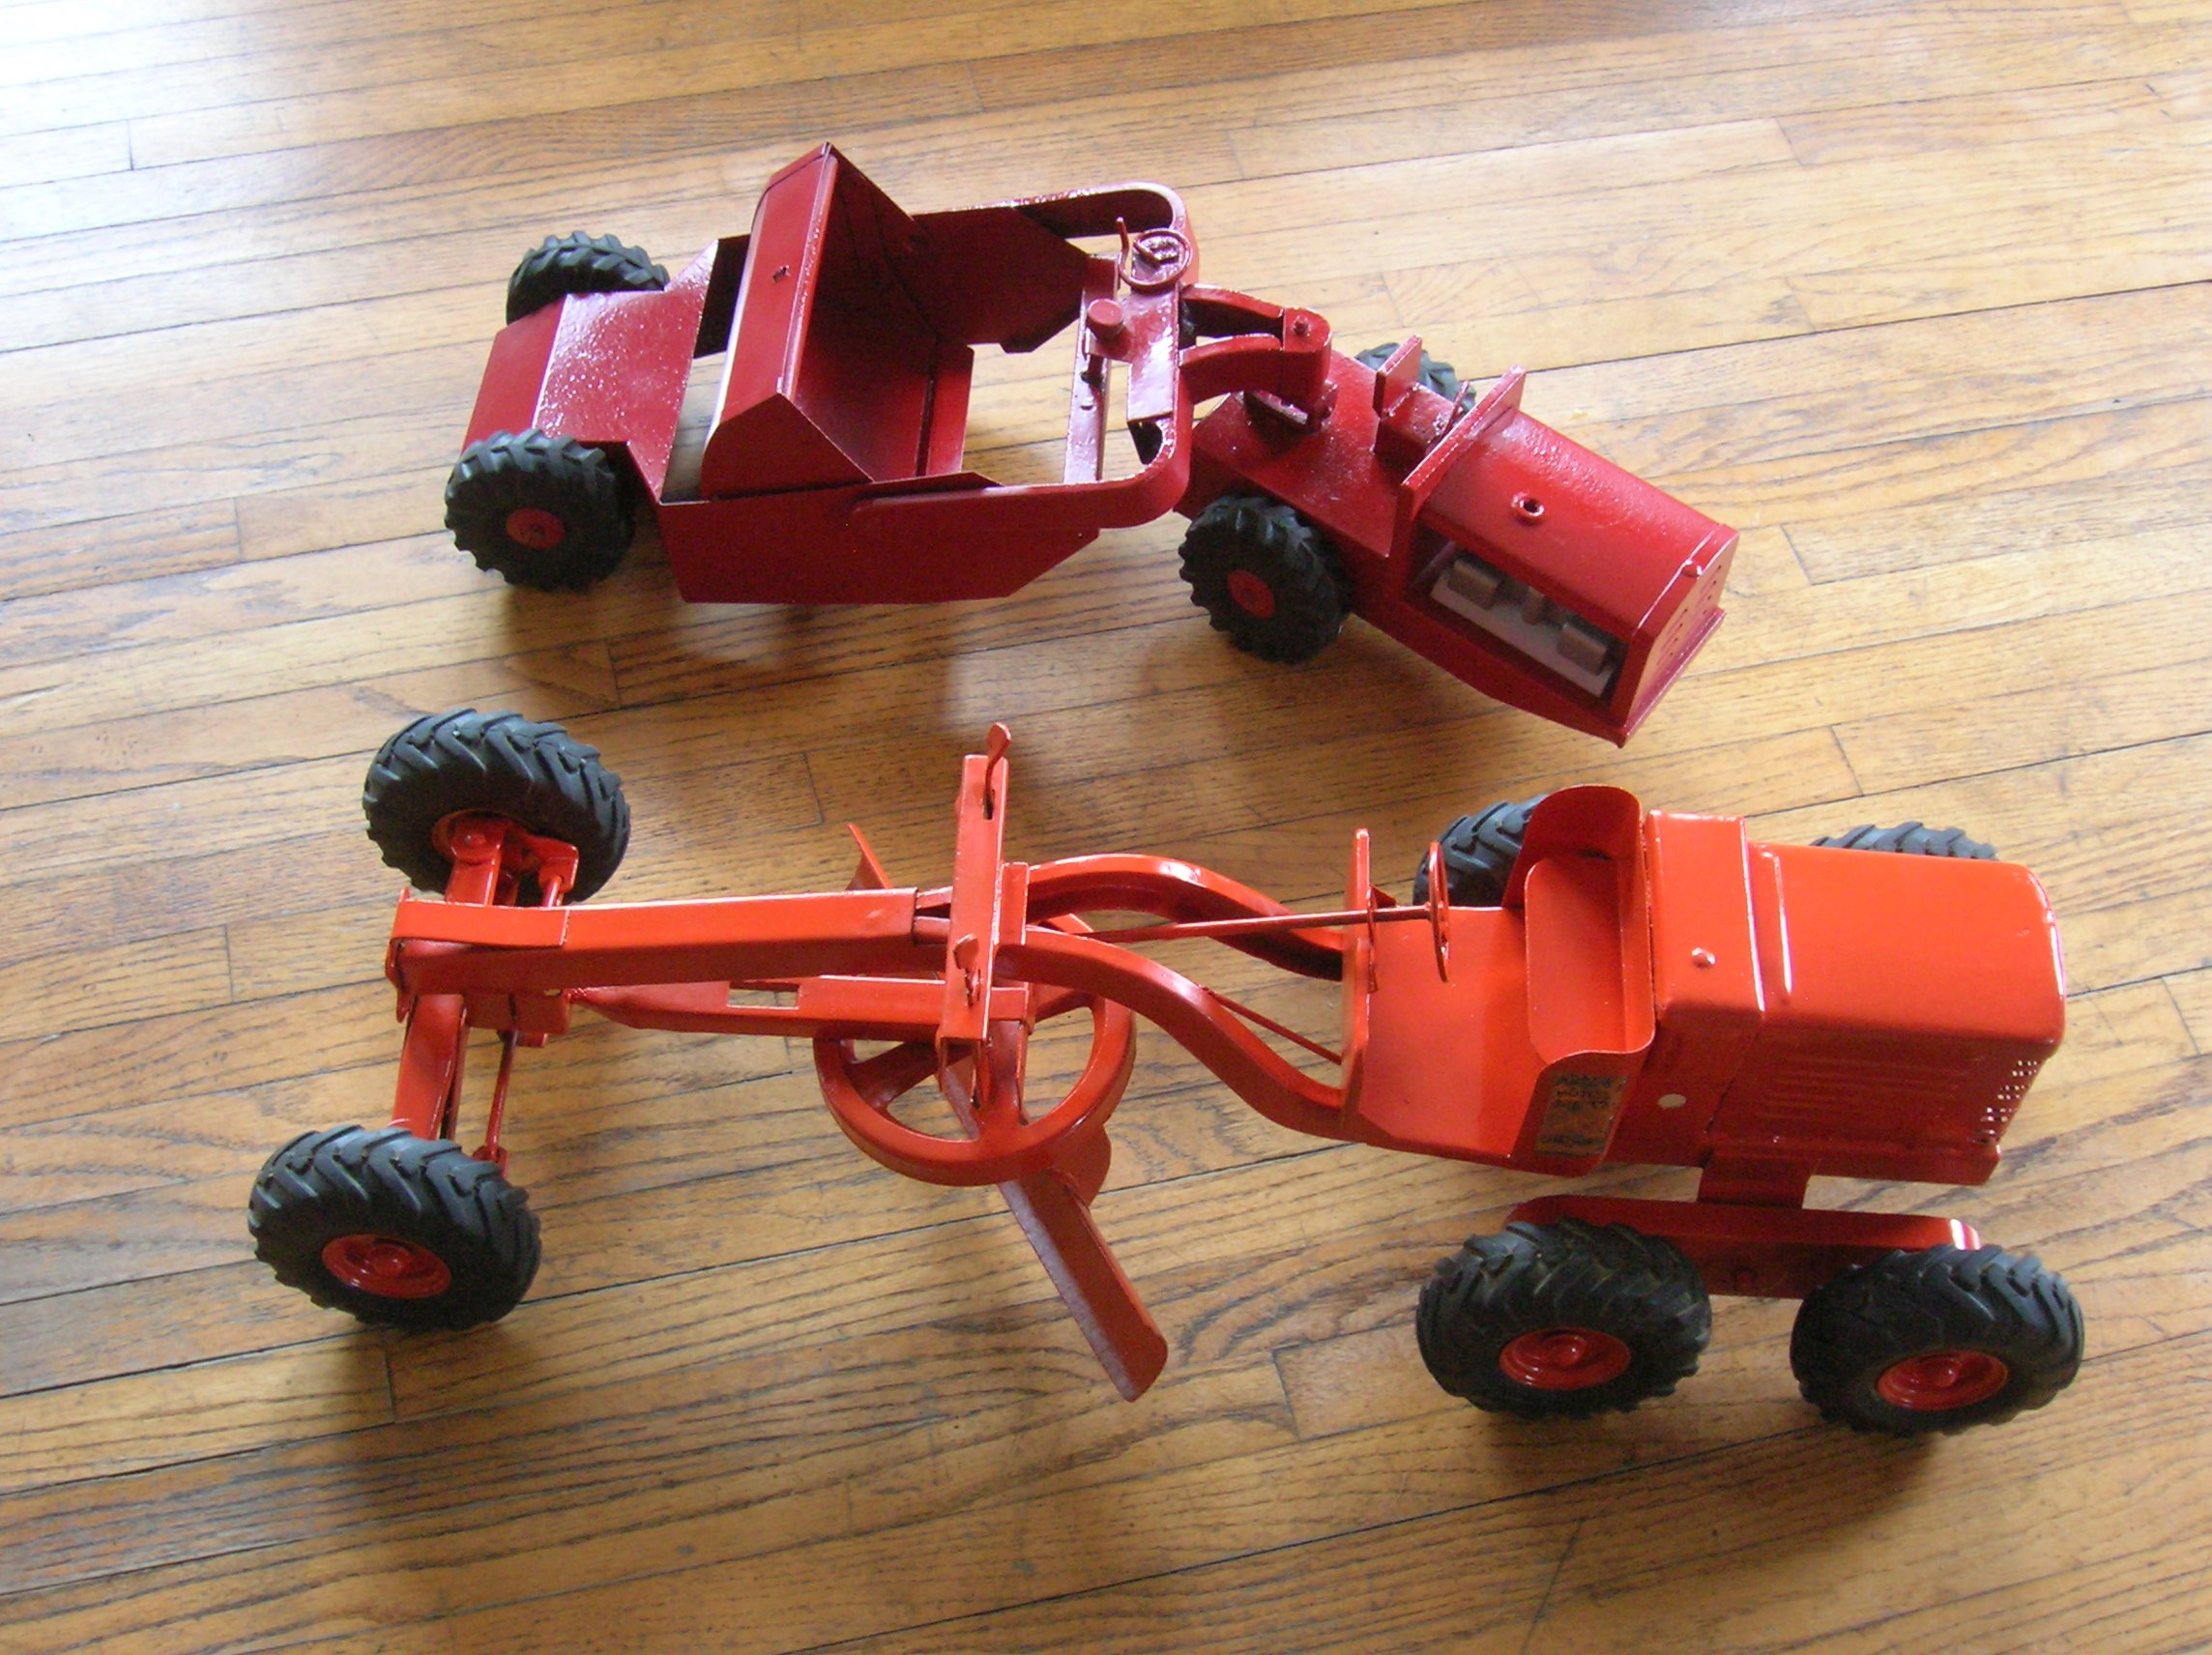 Antique toys are saved from rust and neglect.